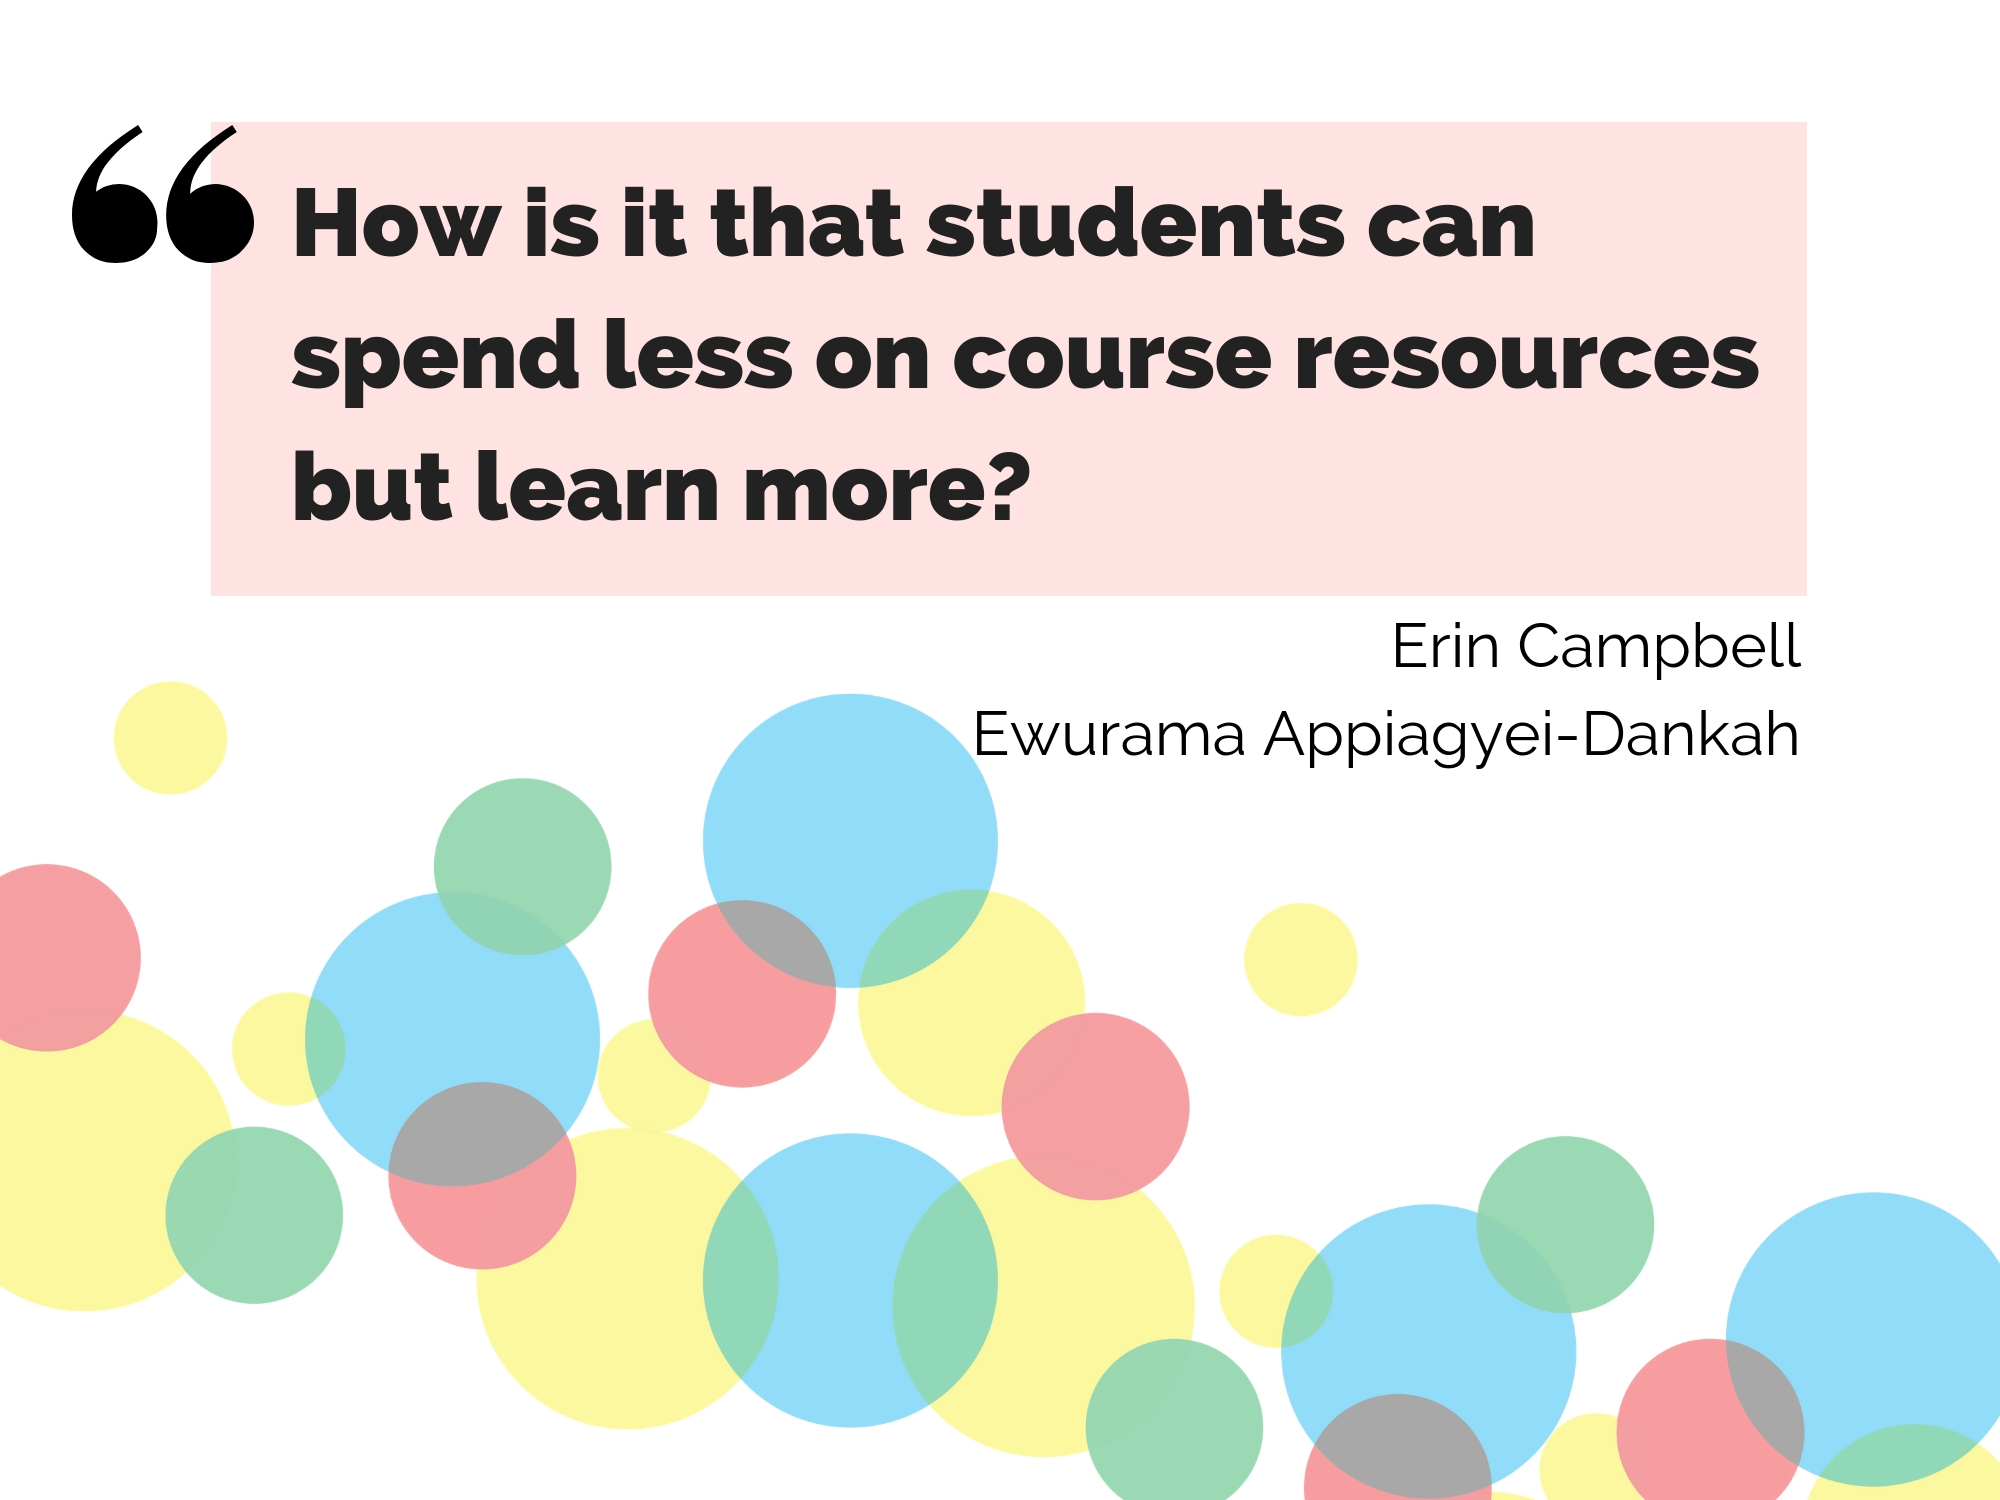 How is it that students can spend less on course resources but learn more? A question by student researchers Erin Campbell and Ewurama Appiagyei-Dankah